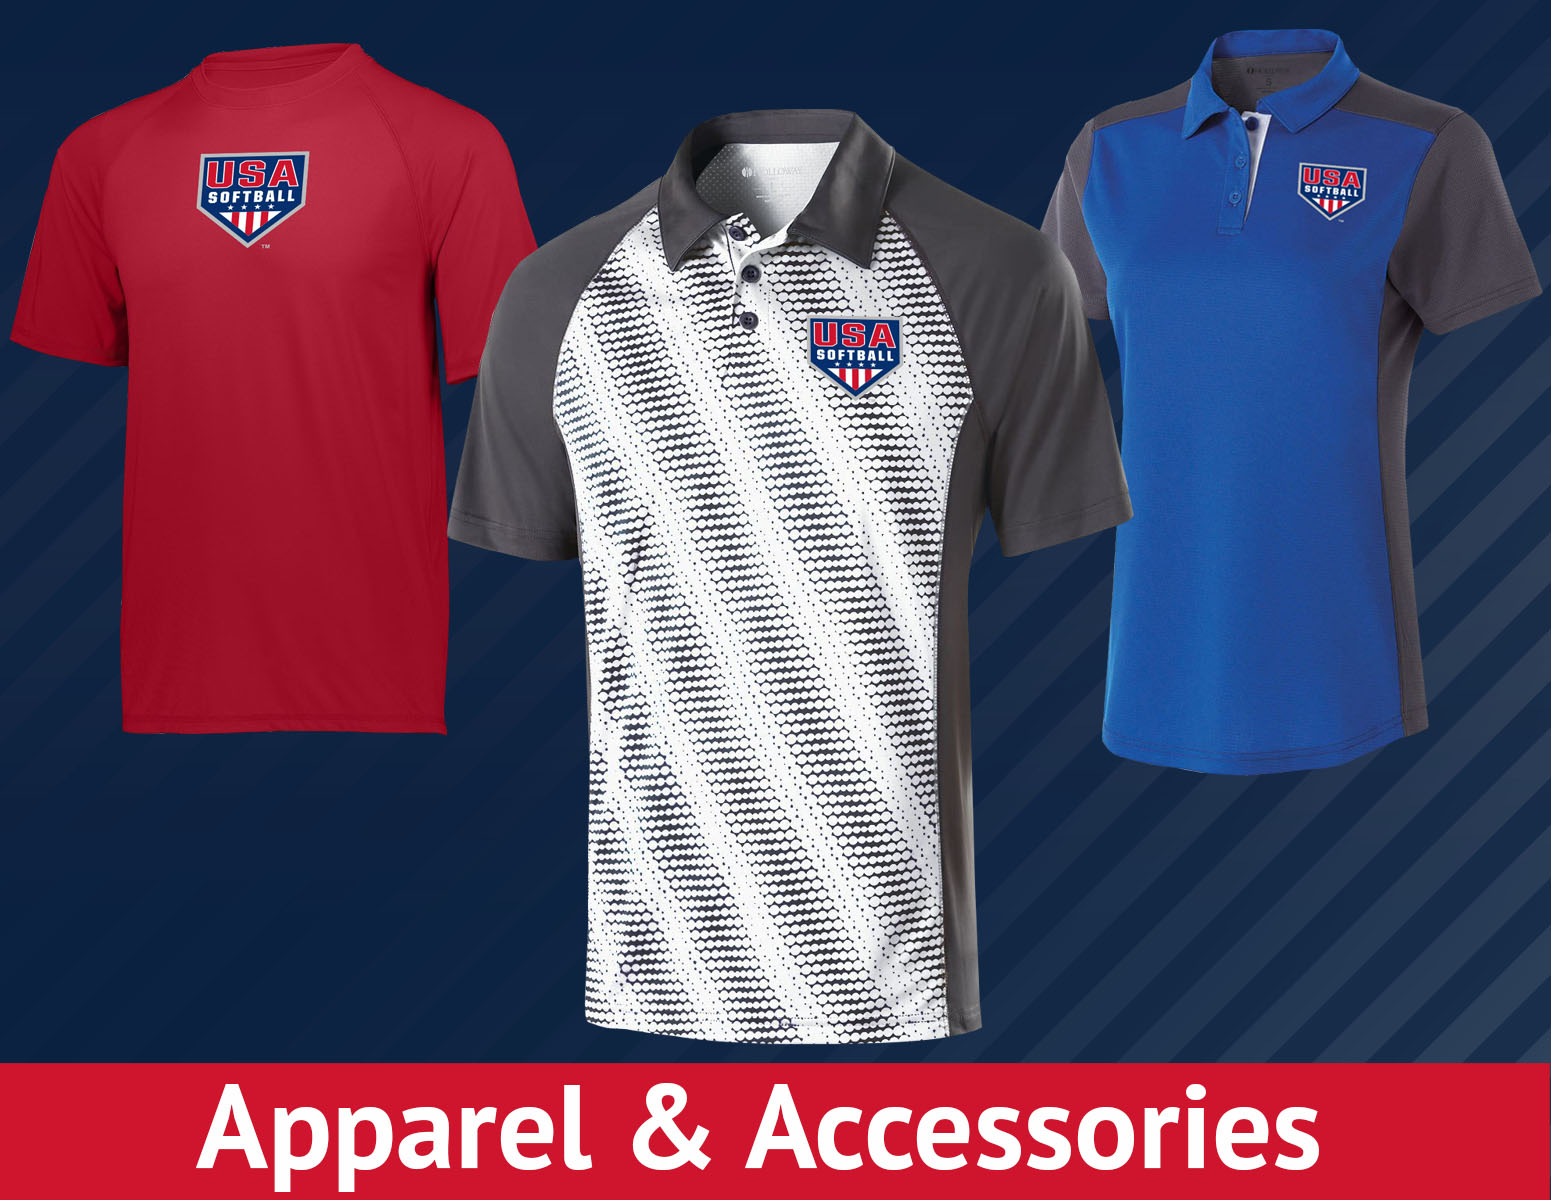 USA APPAREL